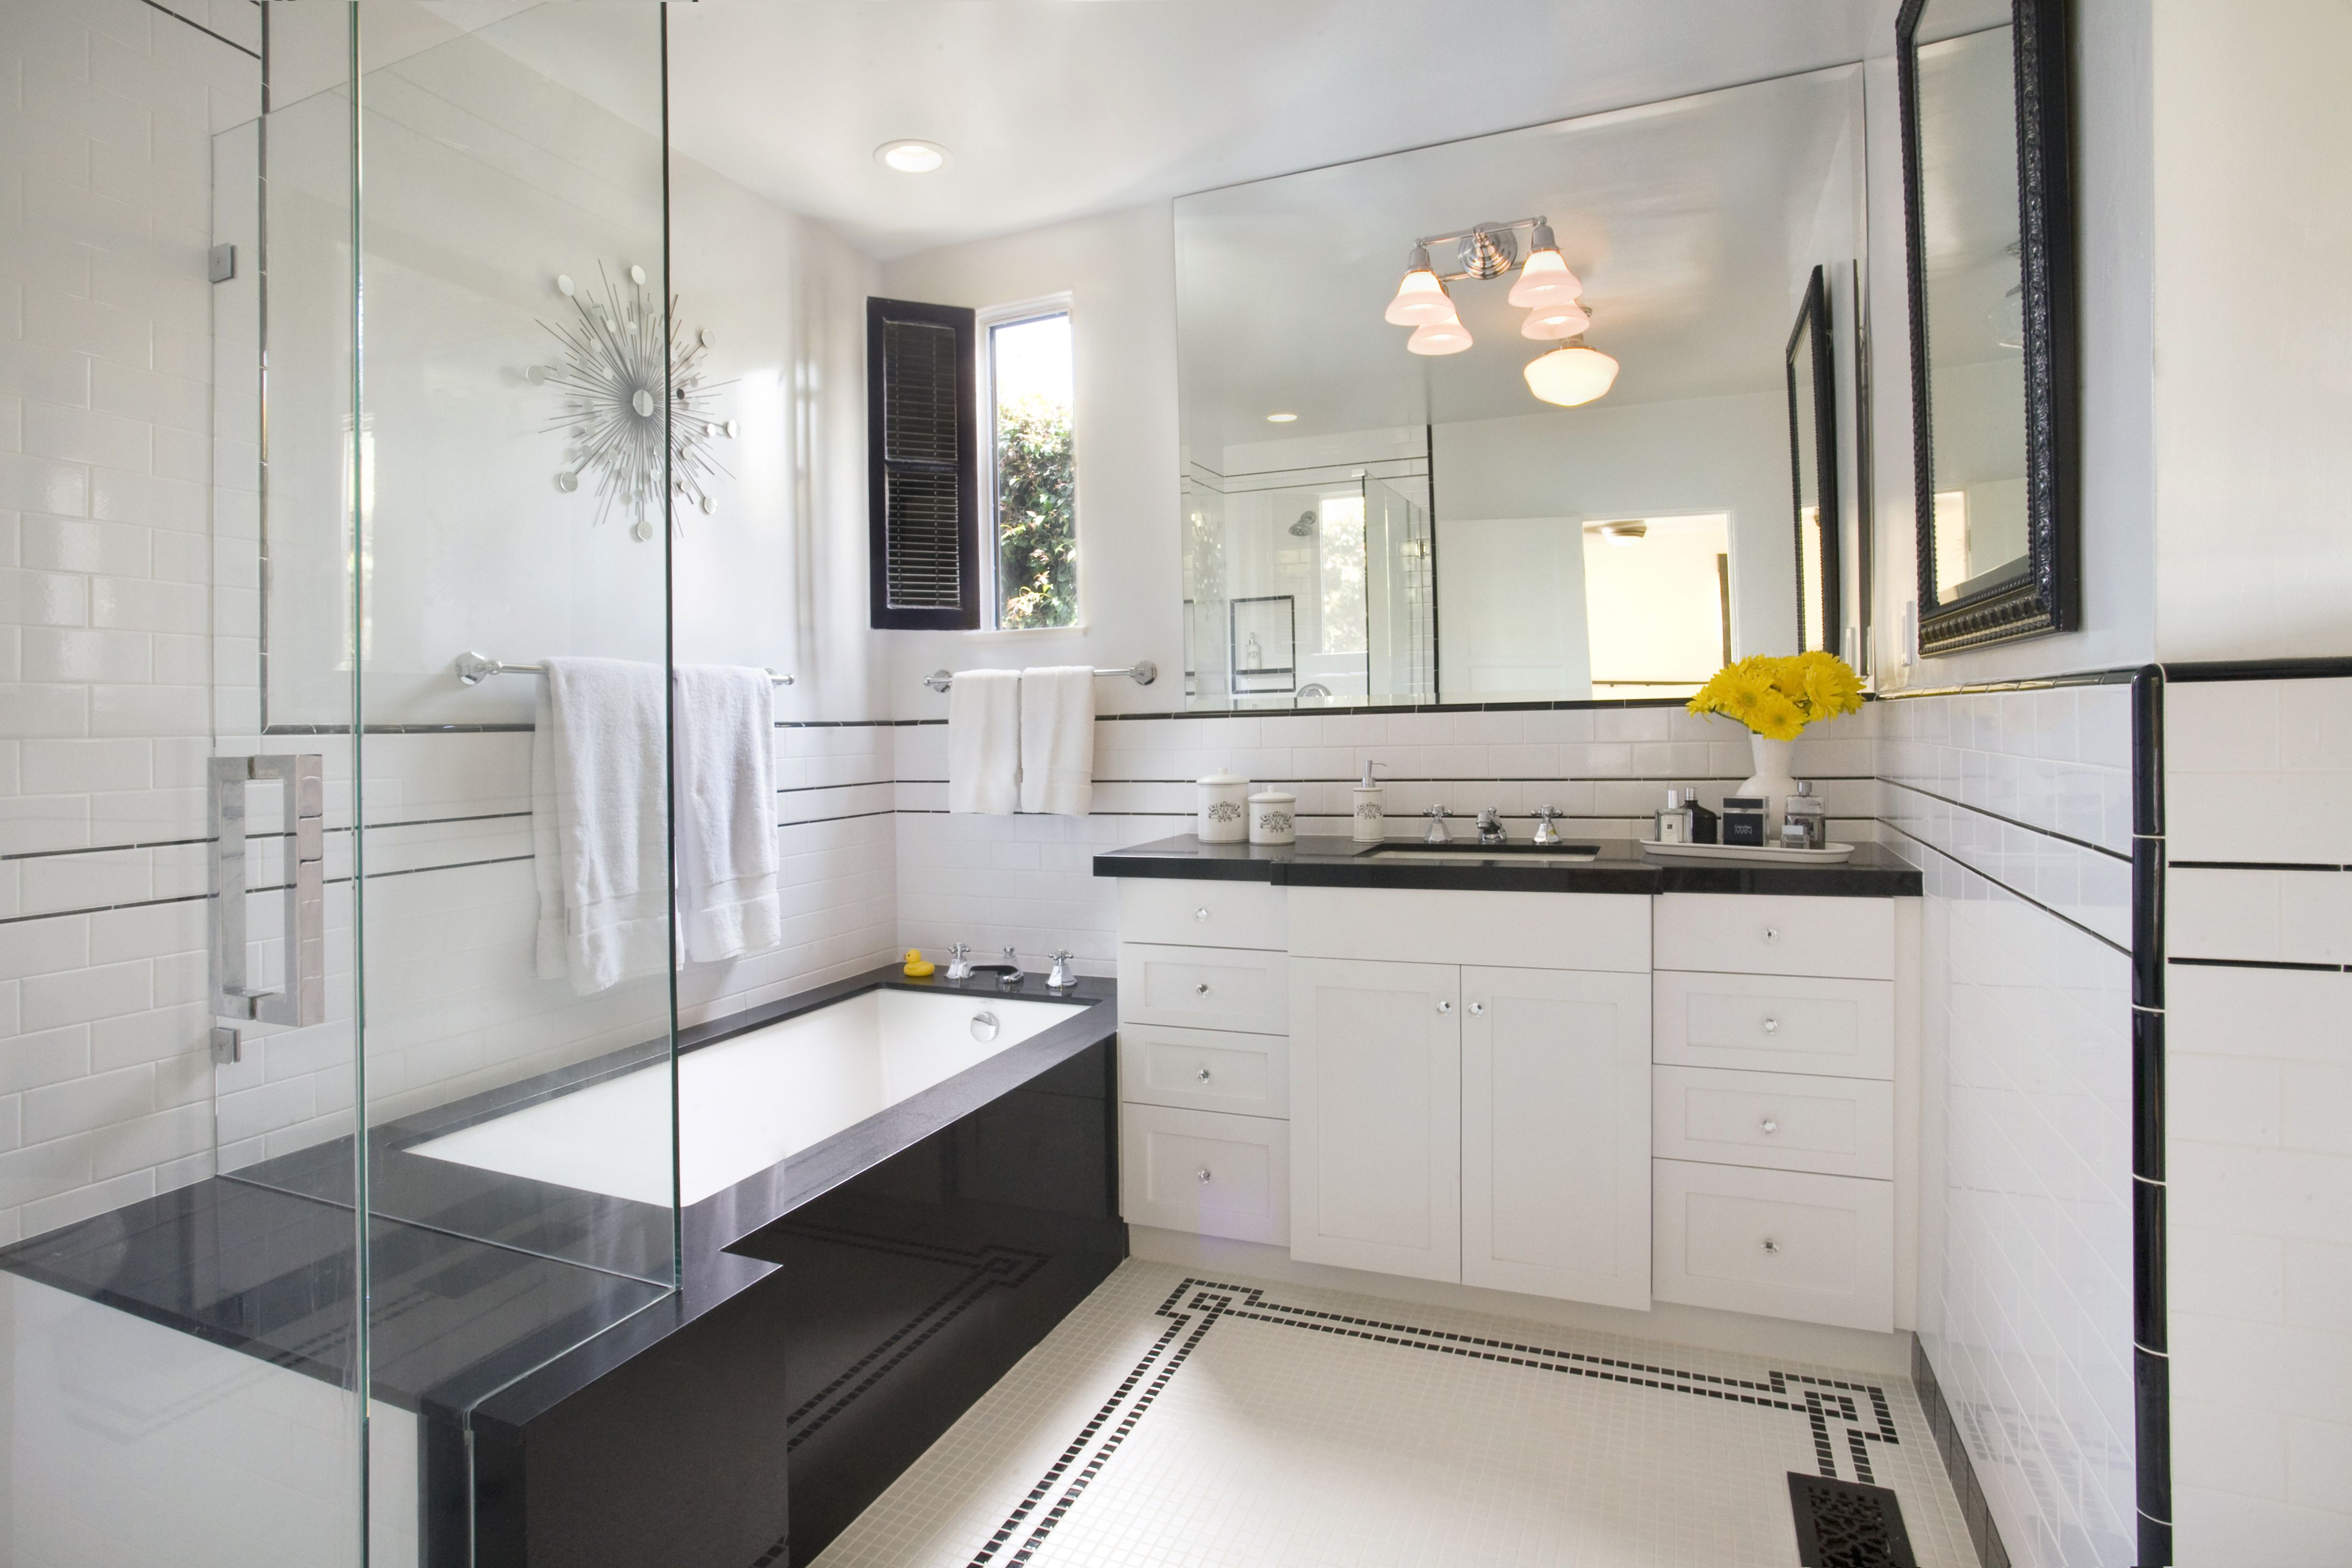 1930s Bathroom Remodel Before and After! | Kitchen project ...